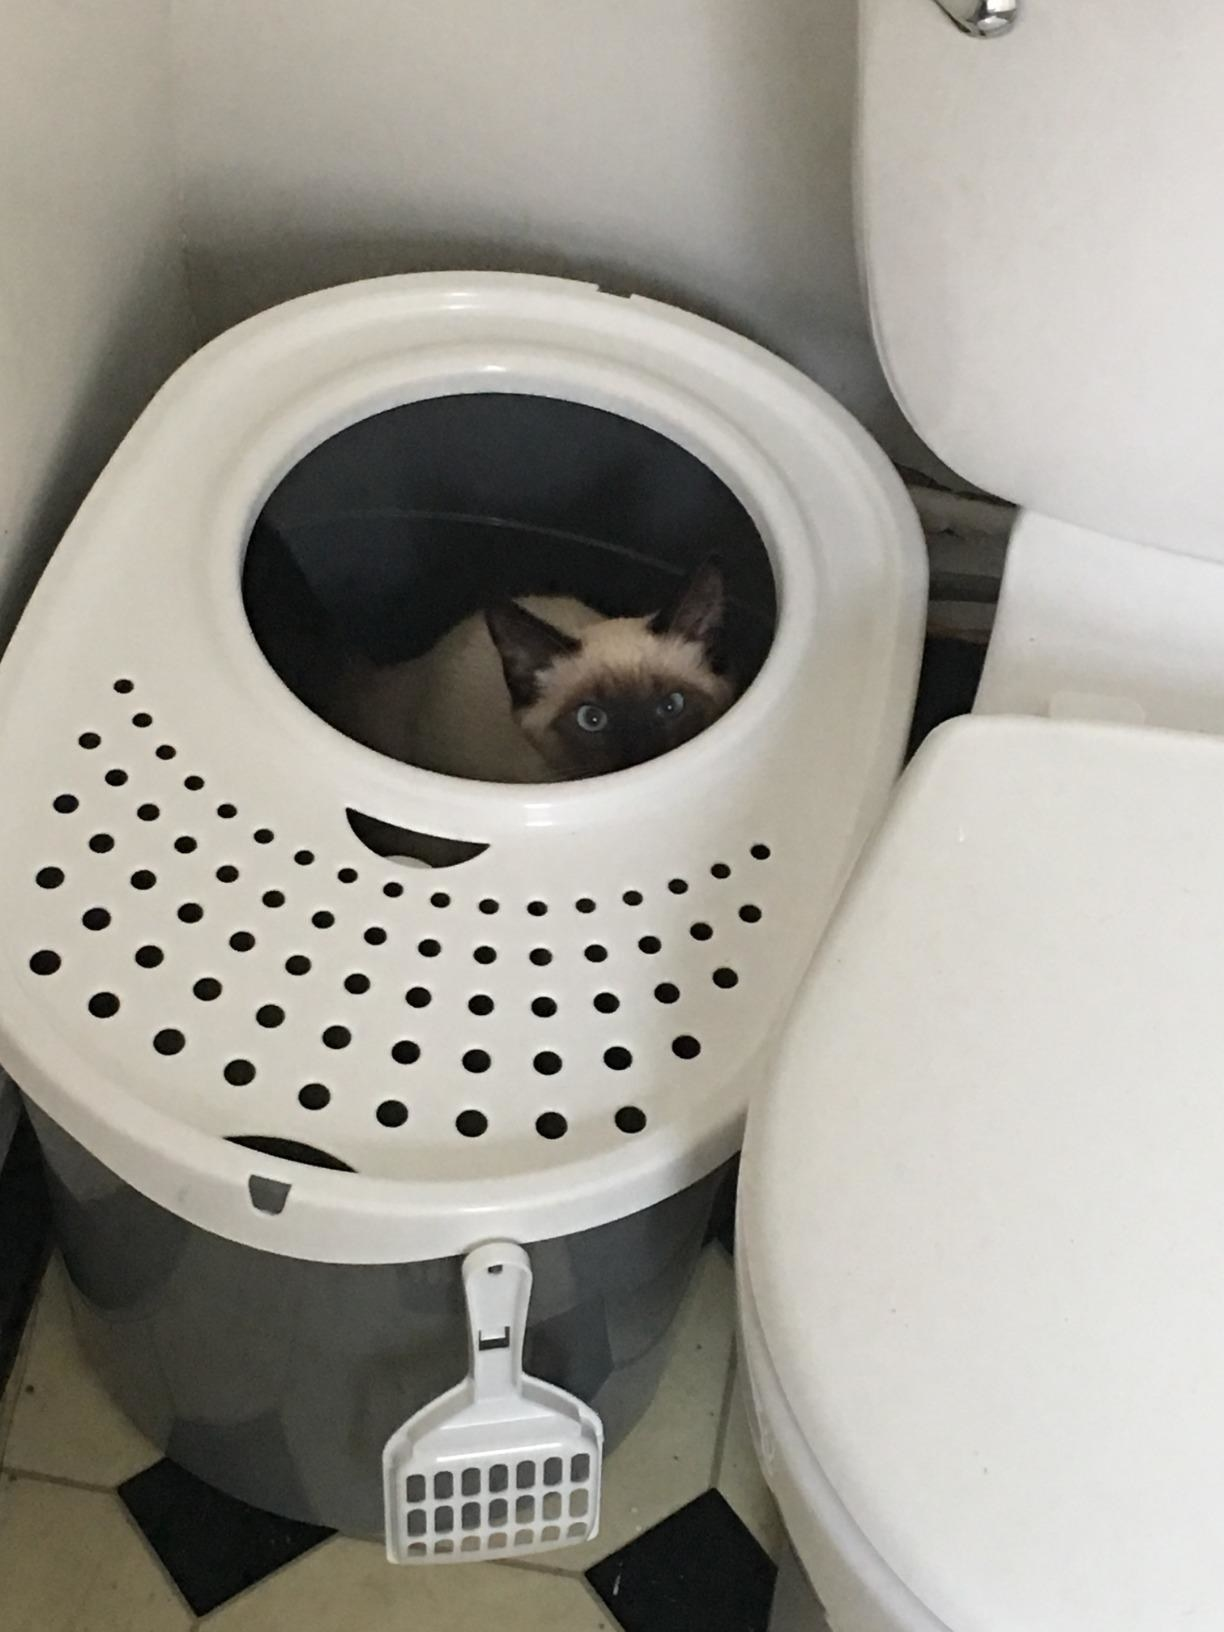 Review photo of the gray/white litter box